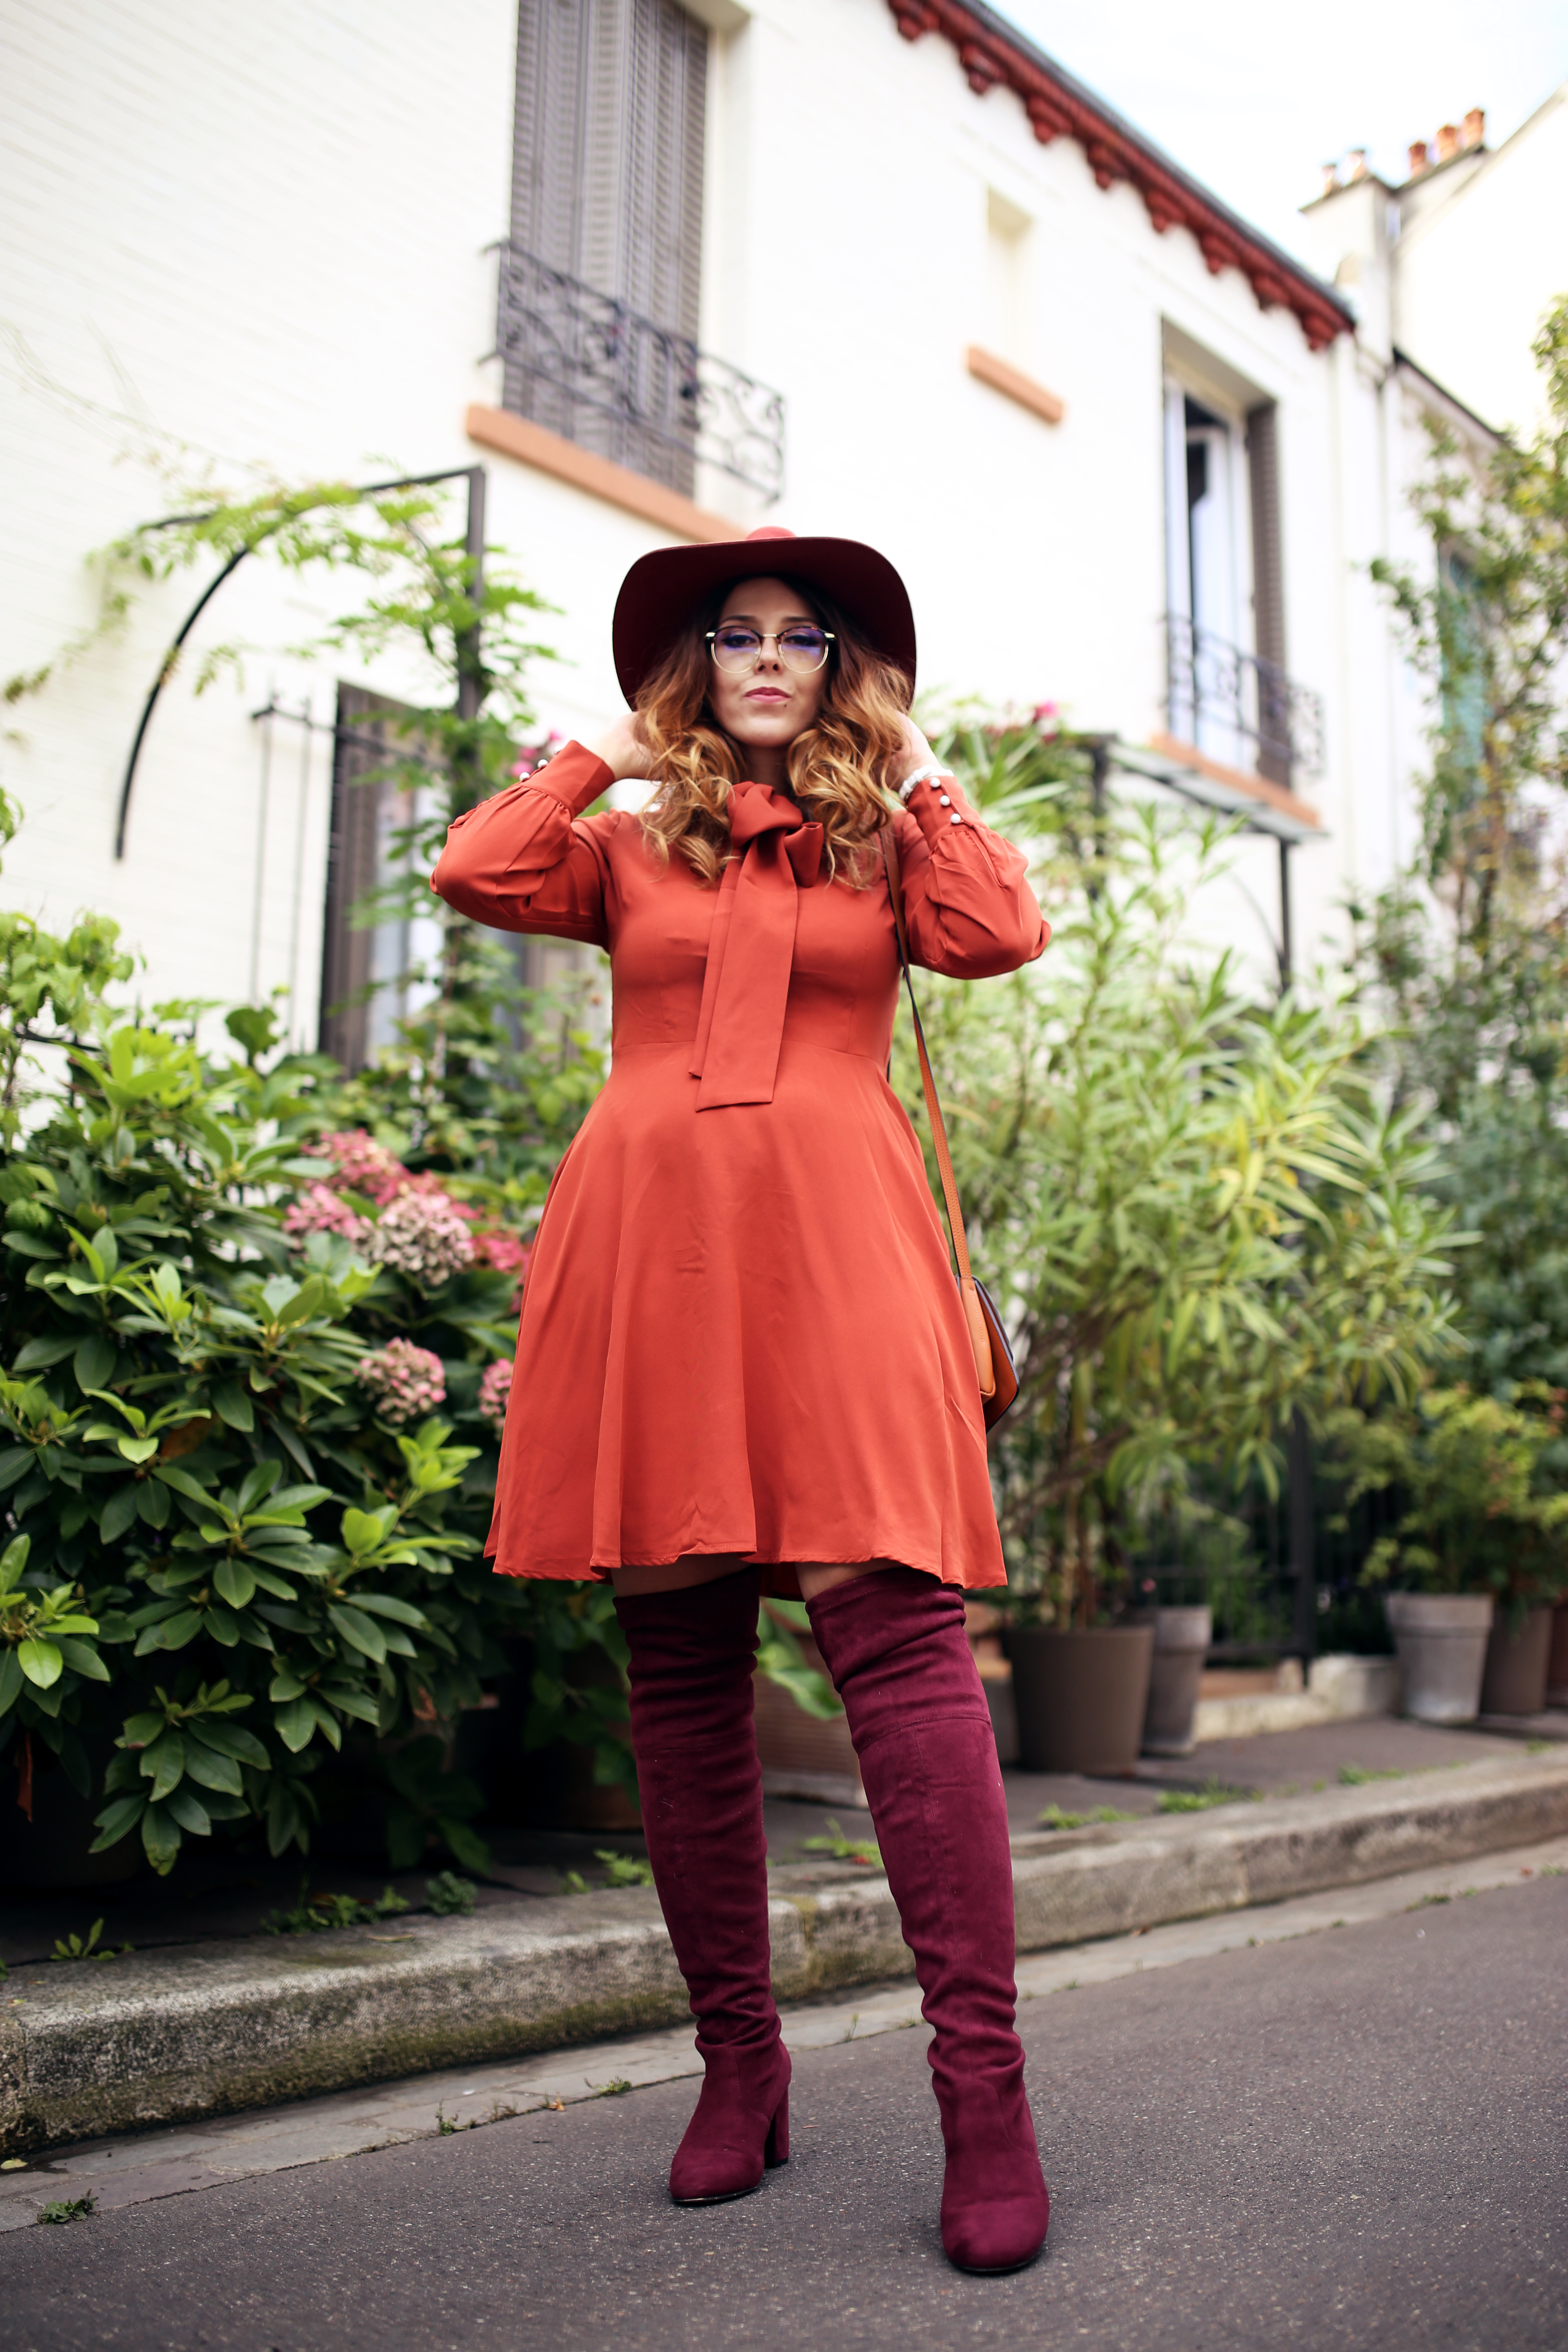 robe preppy joanie clothing blog rétro vintage Paris Charlie Sugar Town